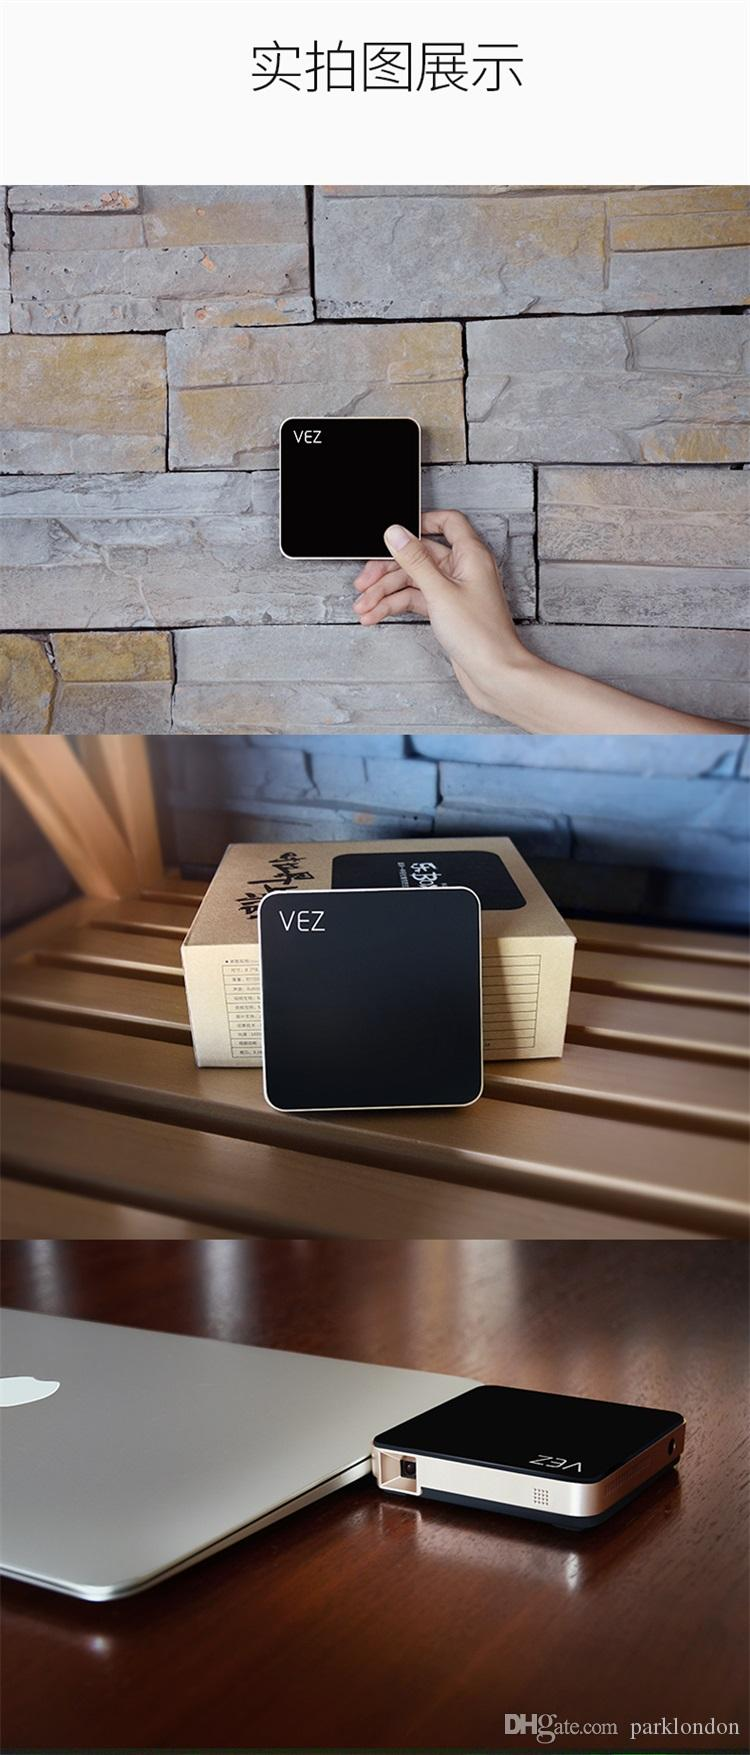 home theater in a box 2017. 2017 vez box multimedia home theater video projector supporting 1080p hdmi usb sd card vga av for cinema tv laptop game smartphones set top in a m